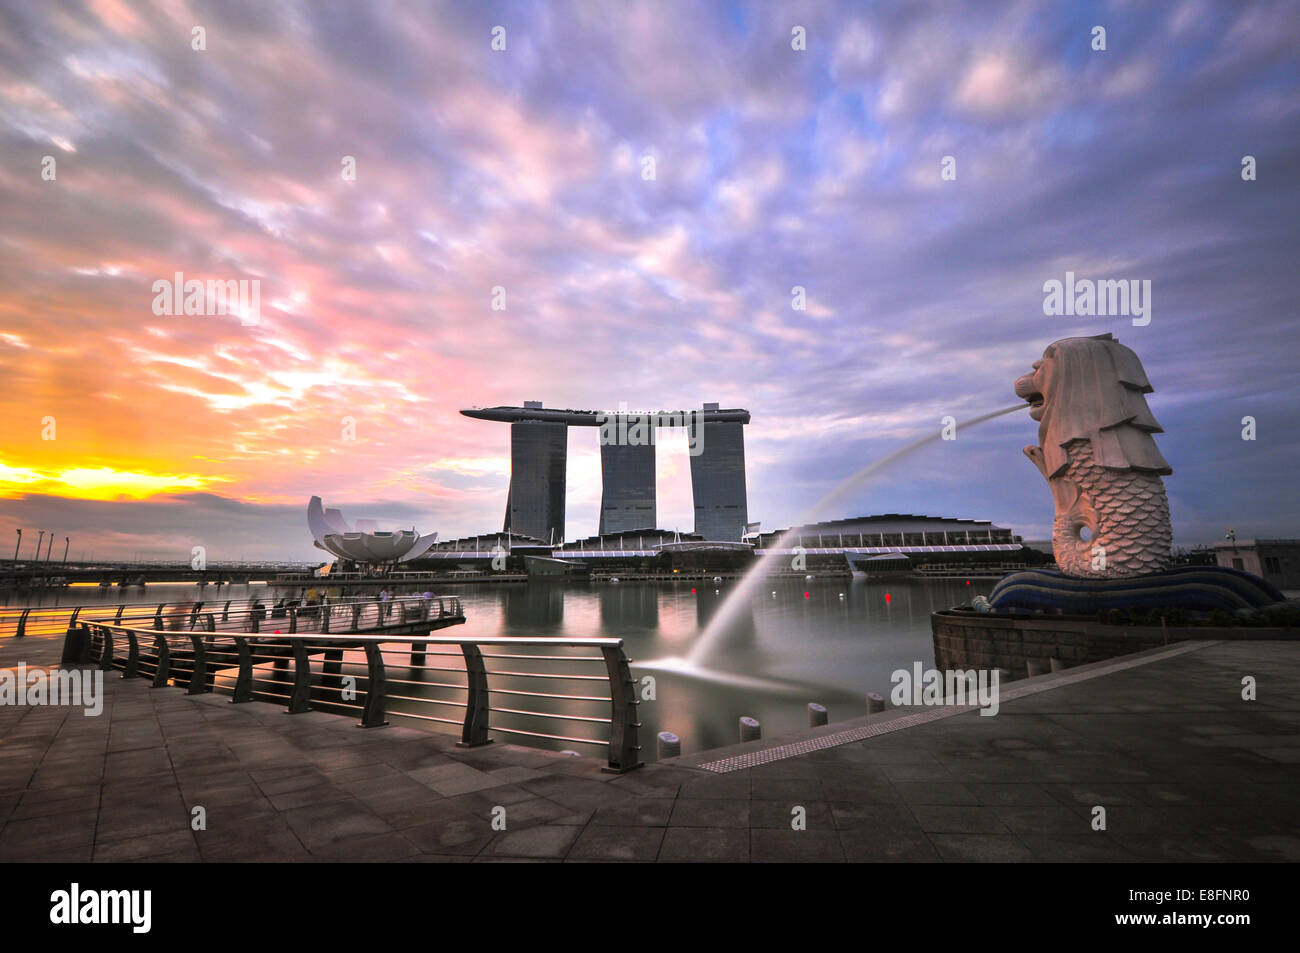 Singapur, Merlion, Ansicht des Merlion Statue Stockbild